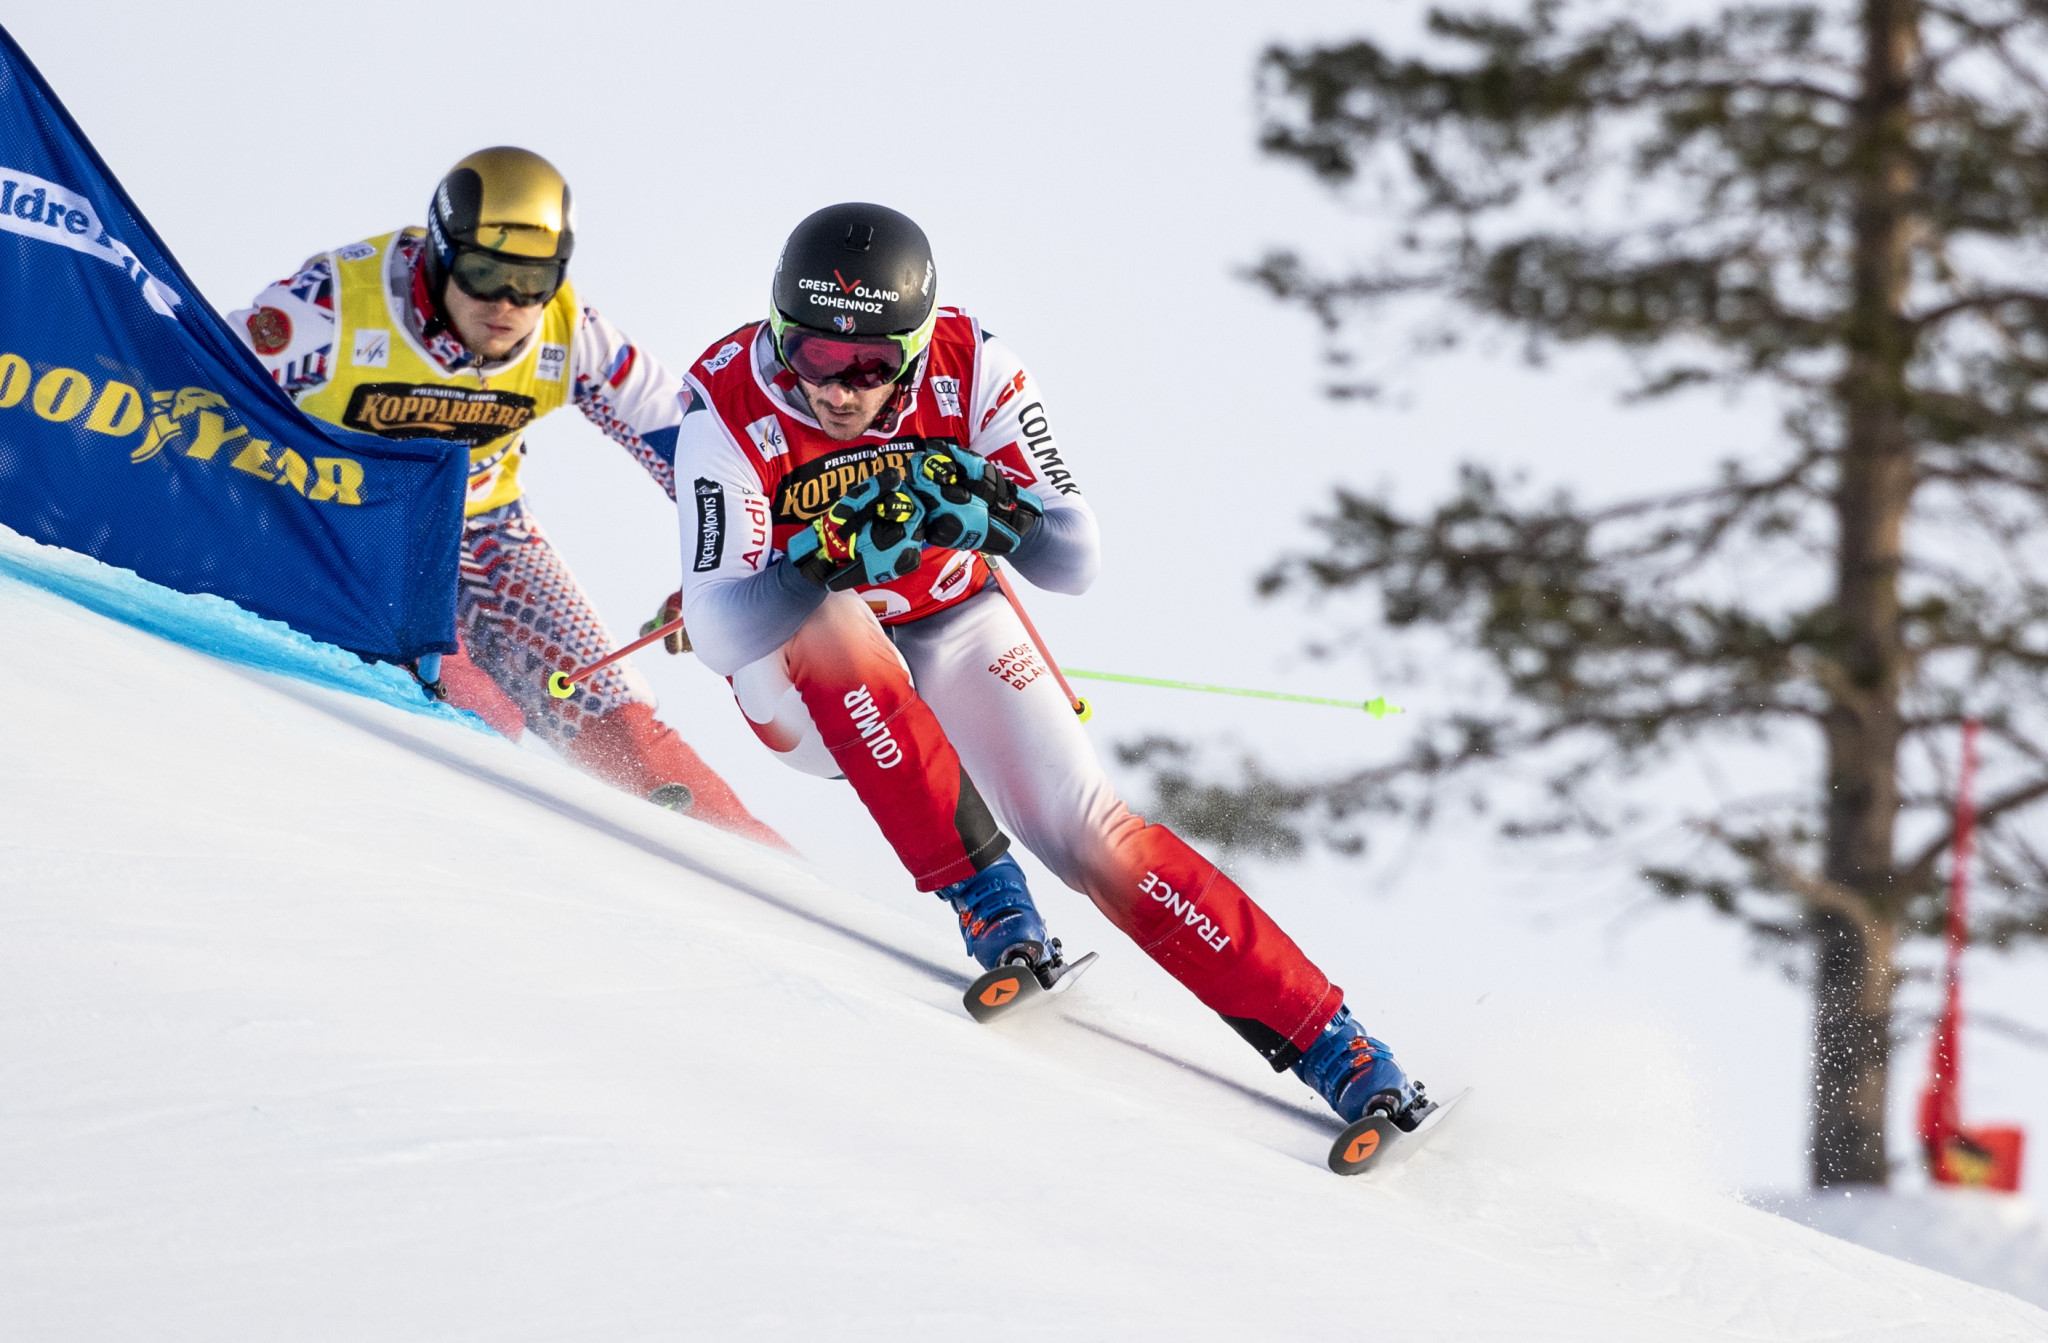 Idre Fjäll steps in to host FIS Cross World Championships next month